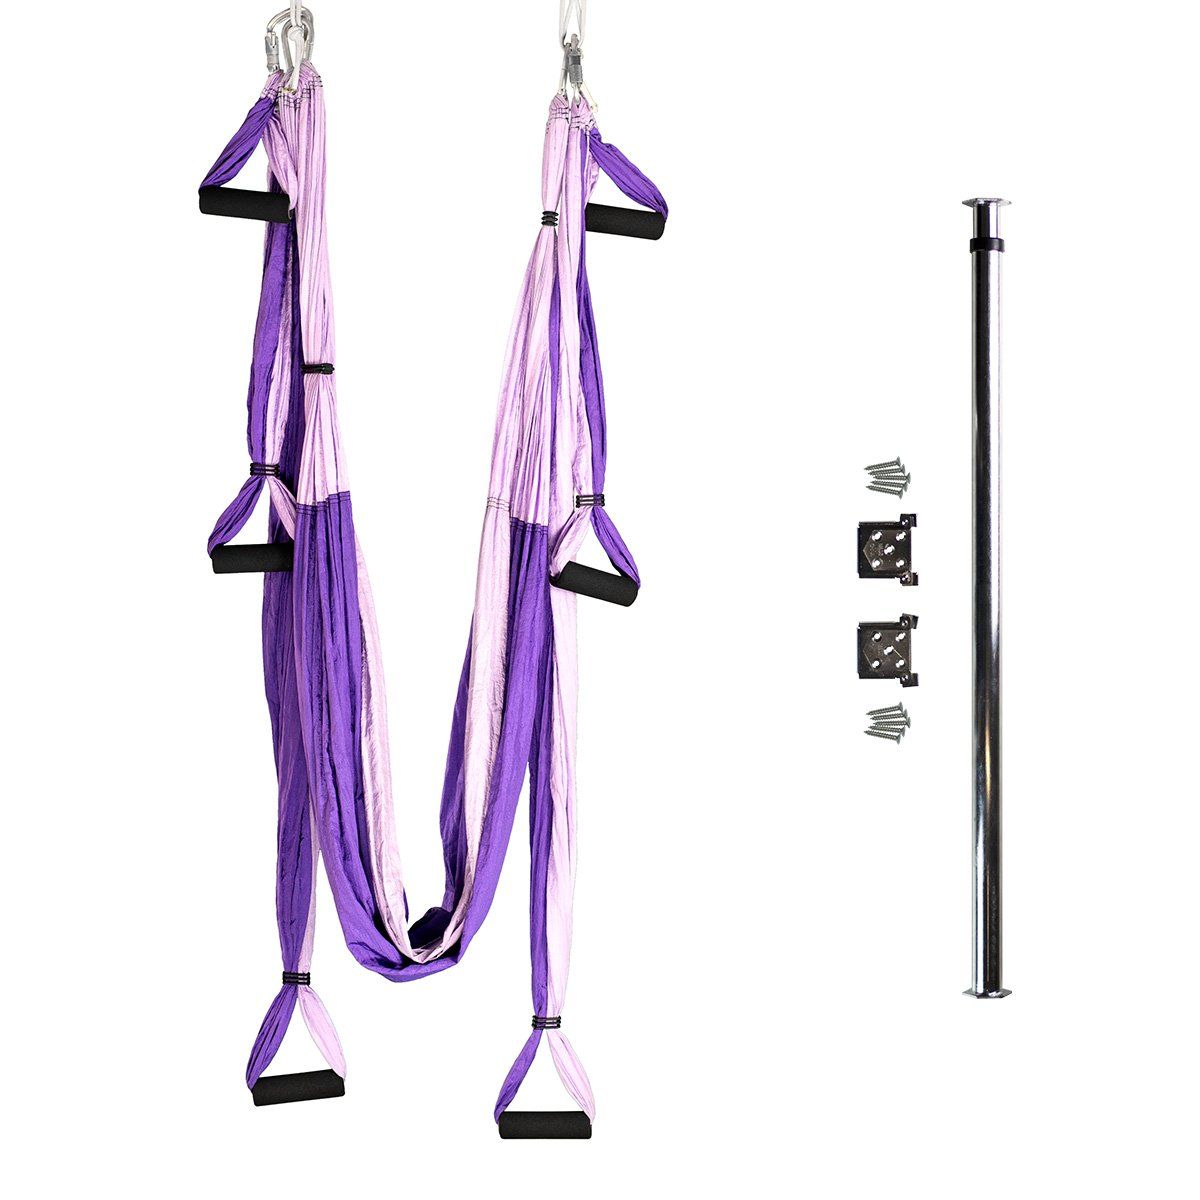 YOGABODY Bundle - 2 Items: Yoga Trapeze & Door-Mount Bar [Bundle] - Purple with Free DVD